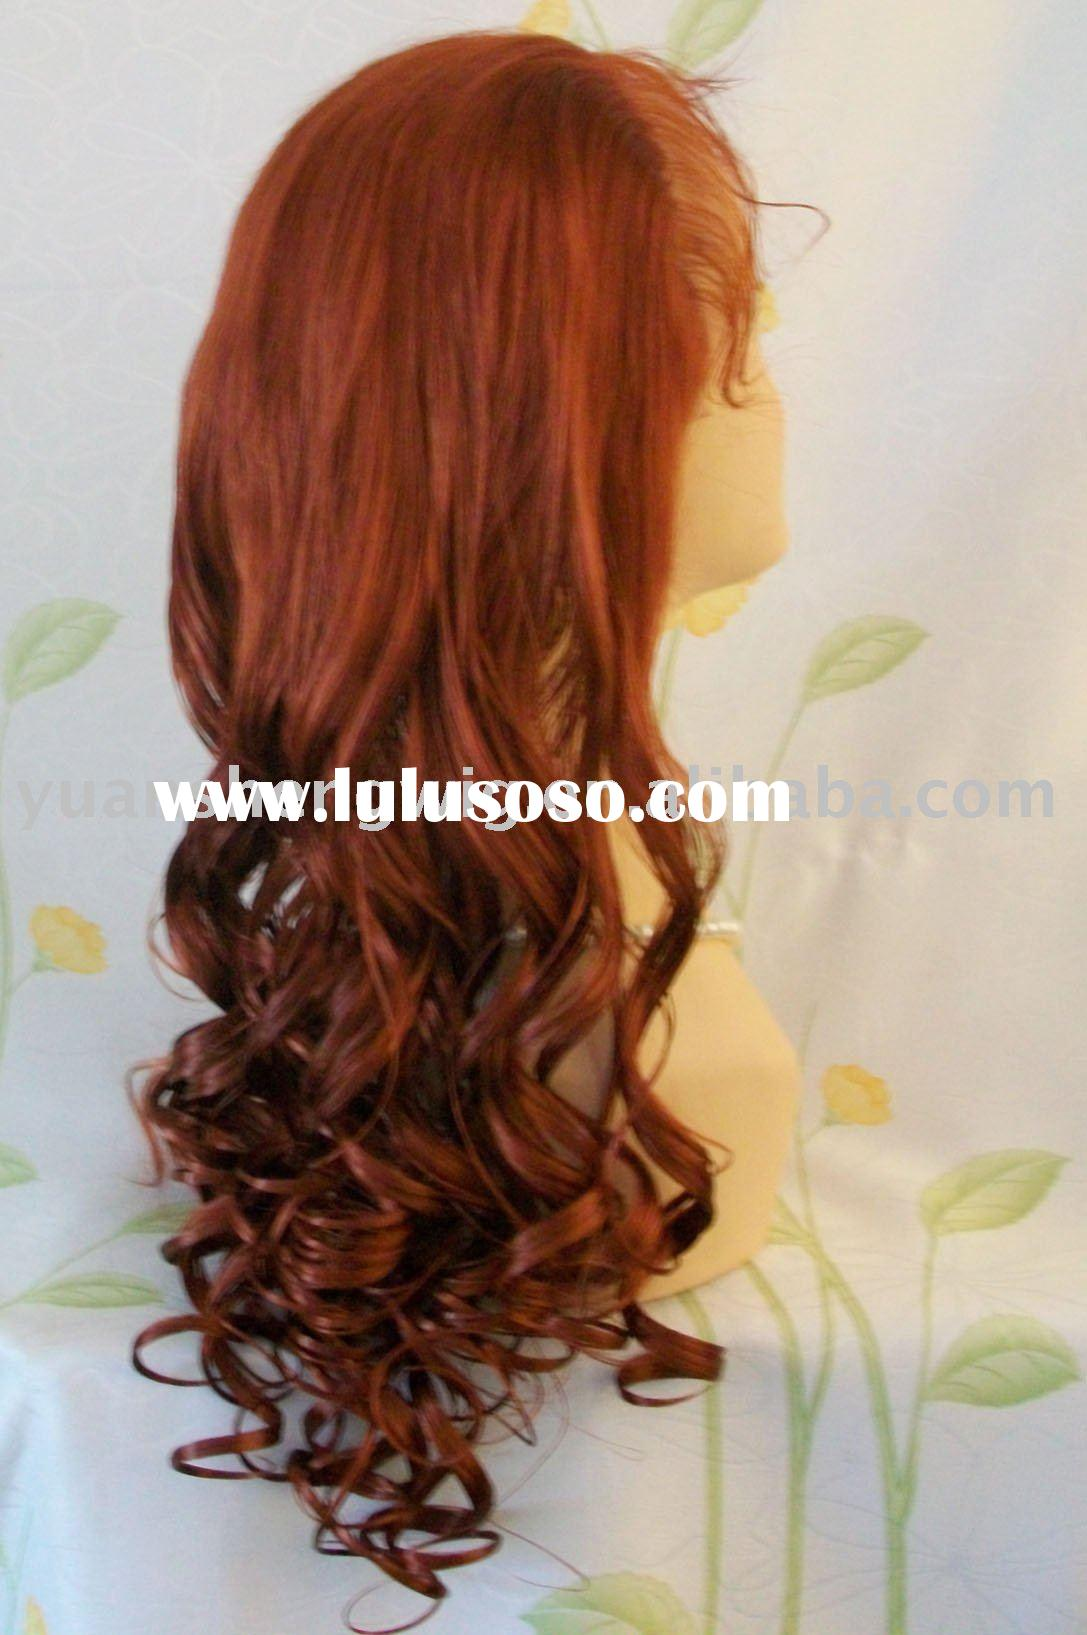 accept paypal/synthetic red wig